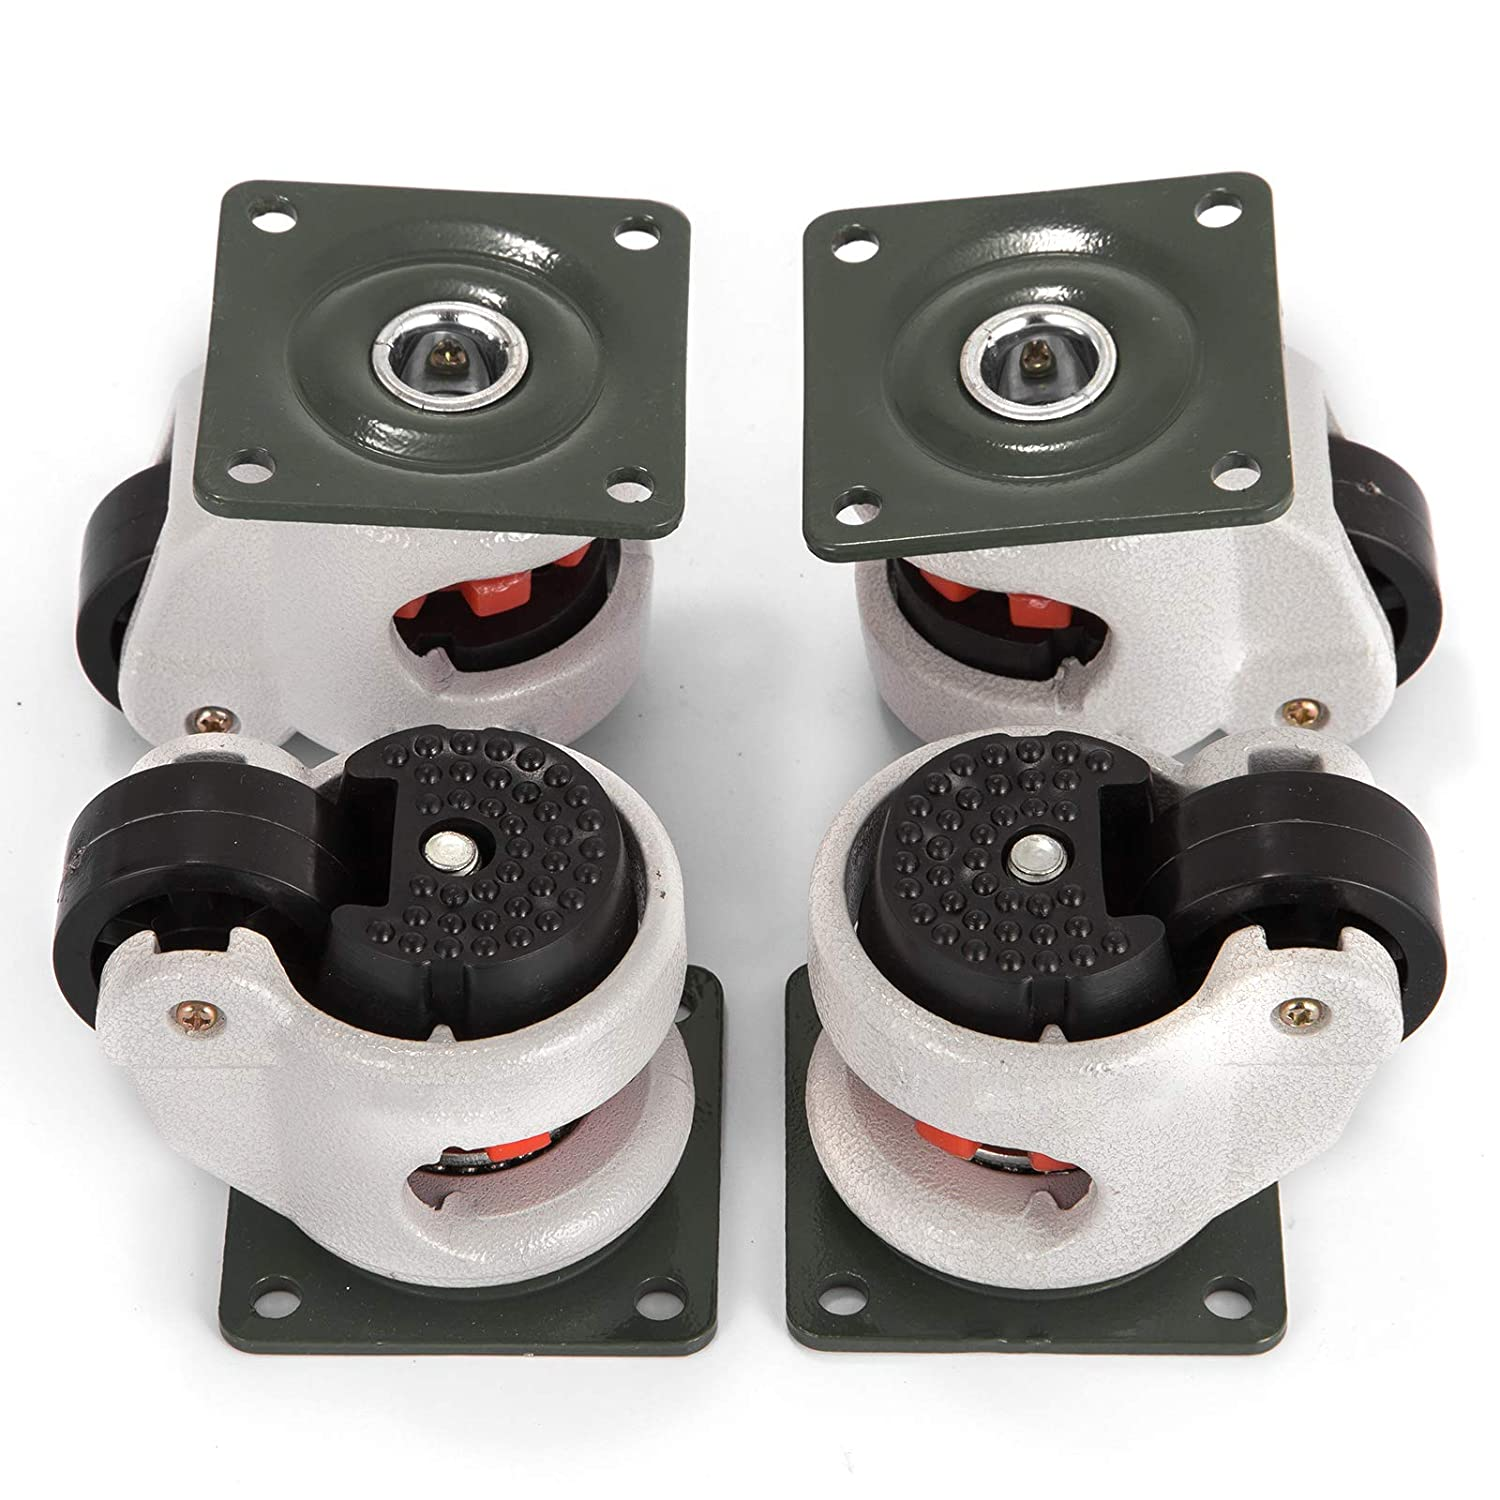 4 Pack GD-40F Leveling Casters Plate Mounted Leveling Caster w// Mounting Screws